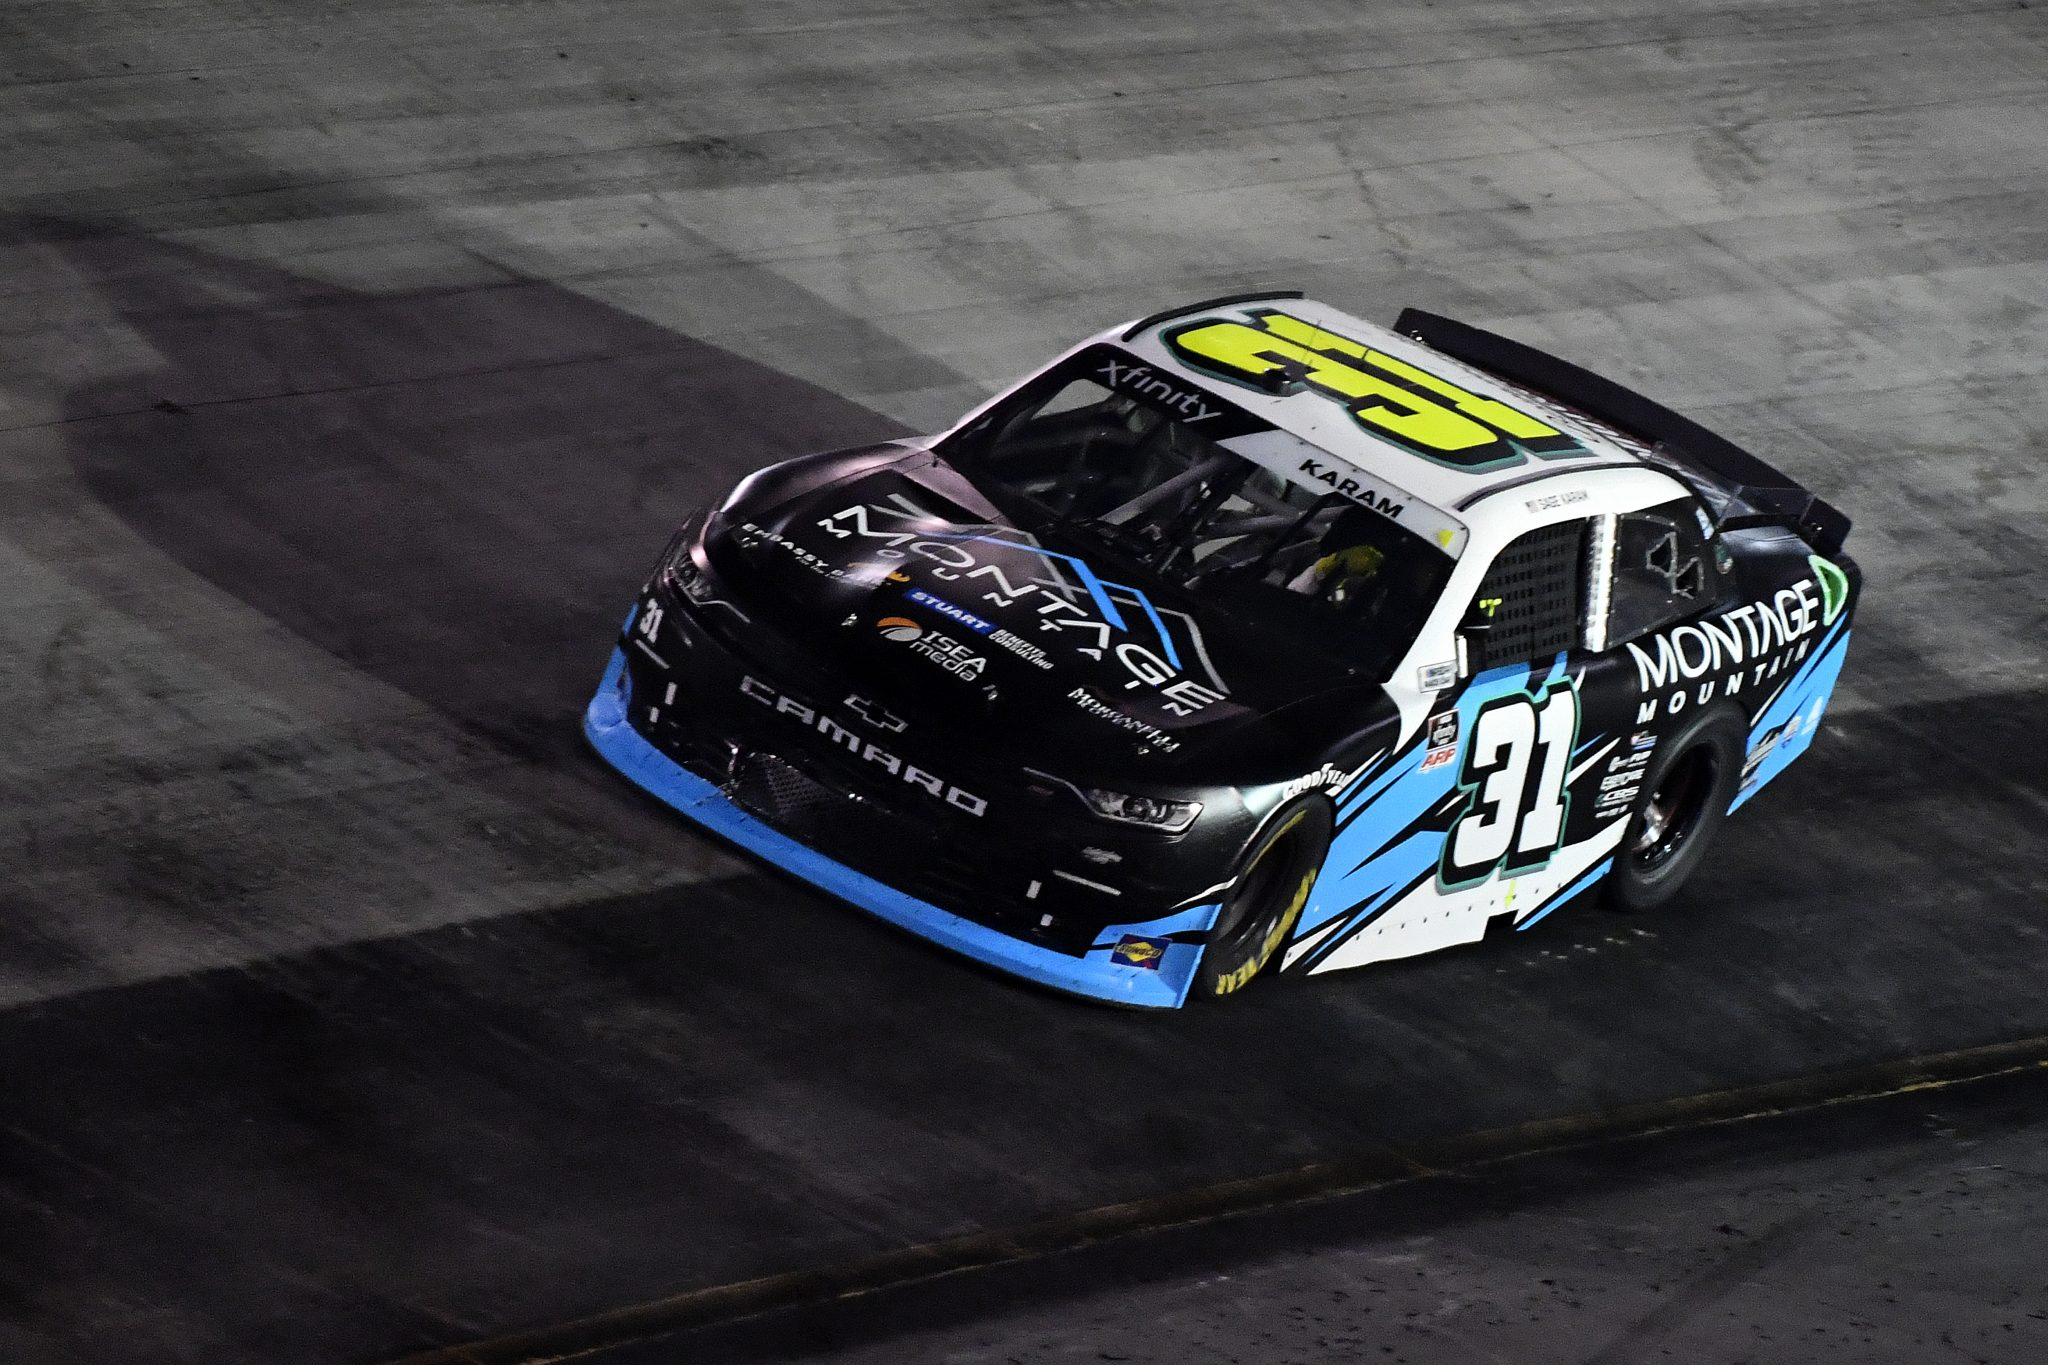 BRISTOL, TENNESSEE - SEPTEMBER 17: Sage Karam, driver of the #31 Montage Mountain Chevrolet, drives during the NASCAR Xfinity Series Food City 300 at Bristol Motor Speedway on September 17, 2021 in Bristol, Tennessee. (Photo by Logan Riely/Getty Images) | Getty Images